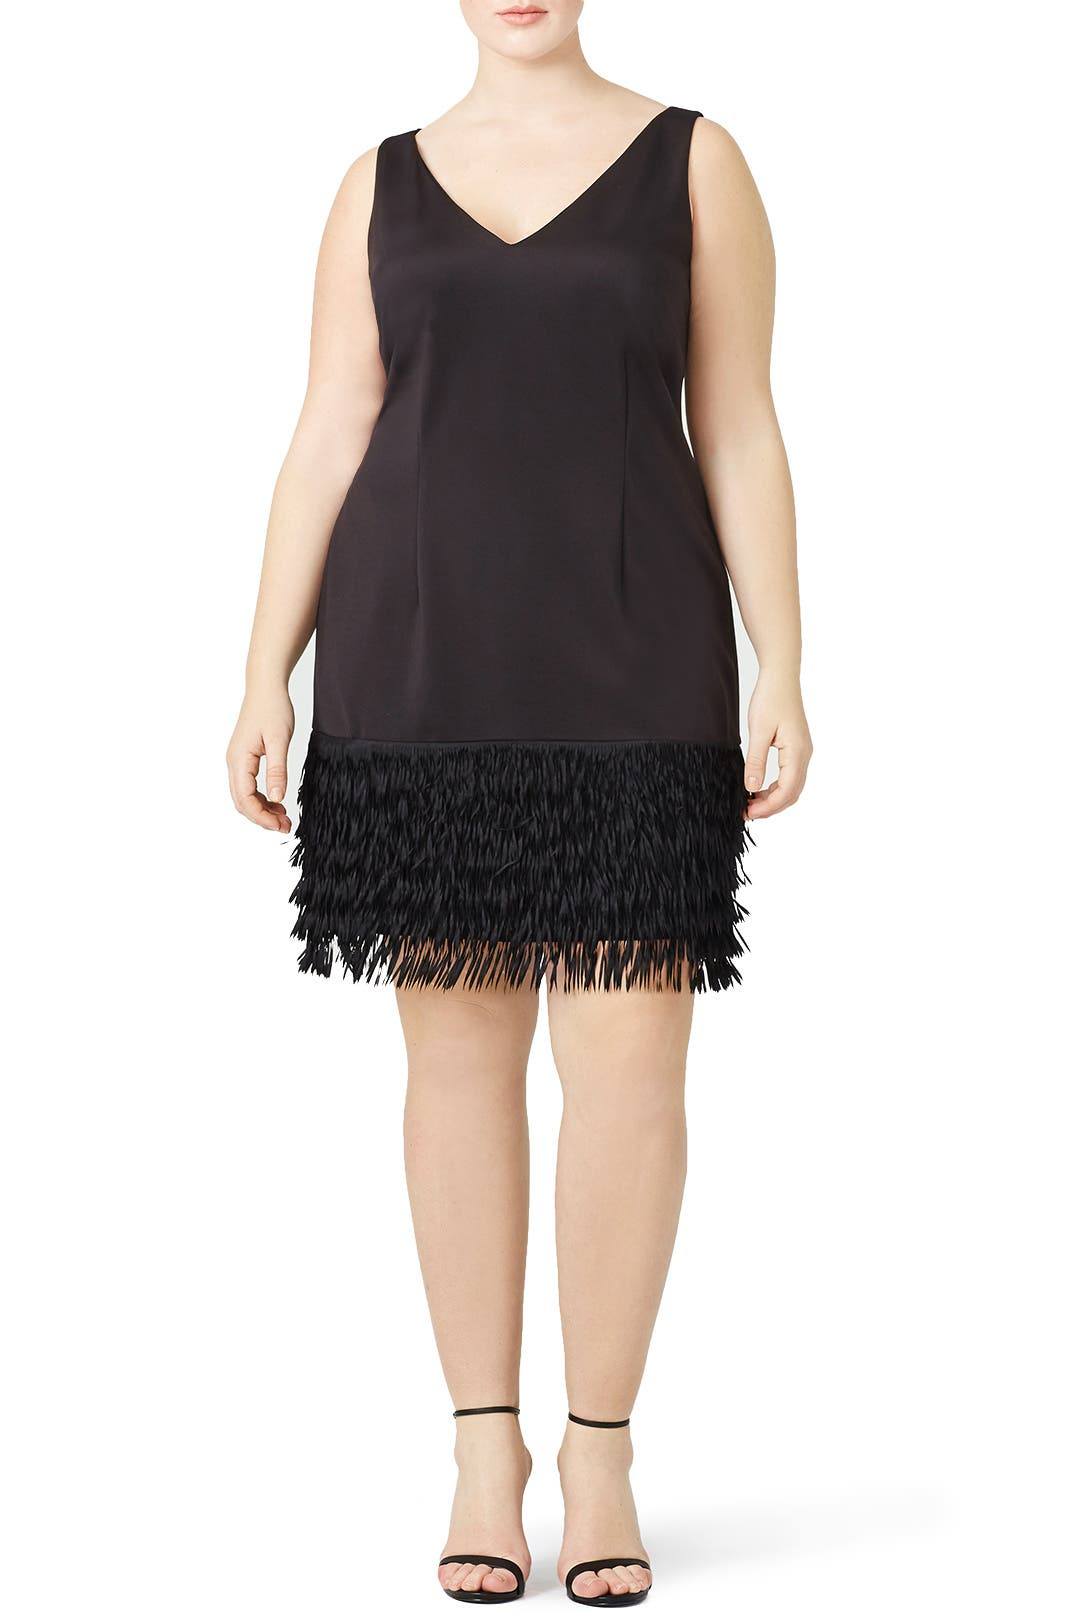 Black Flapper Fringe Dress by Adrianna Papell for $50 | Rent the Runway